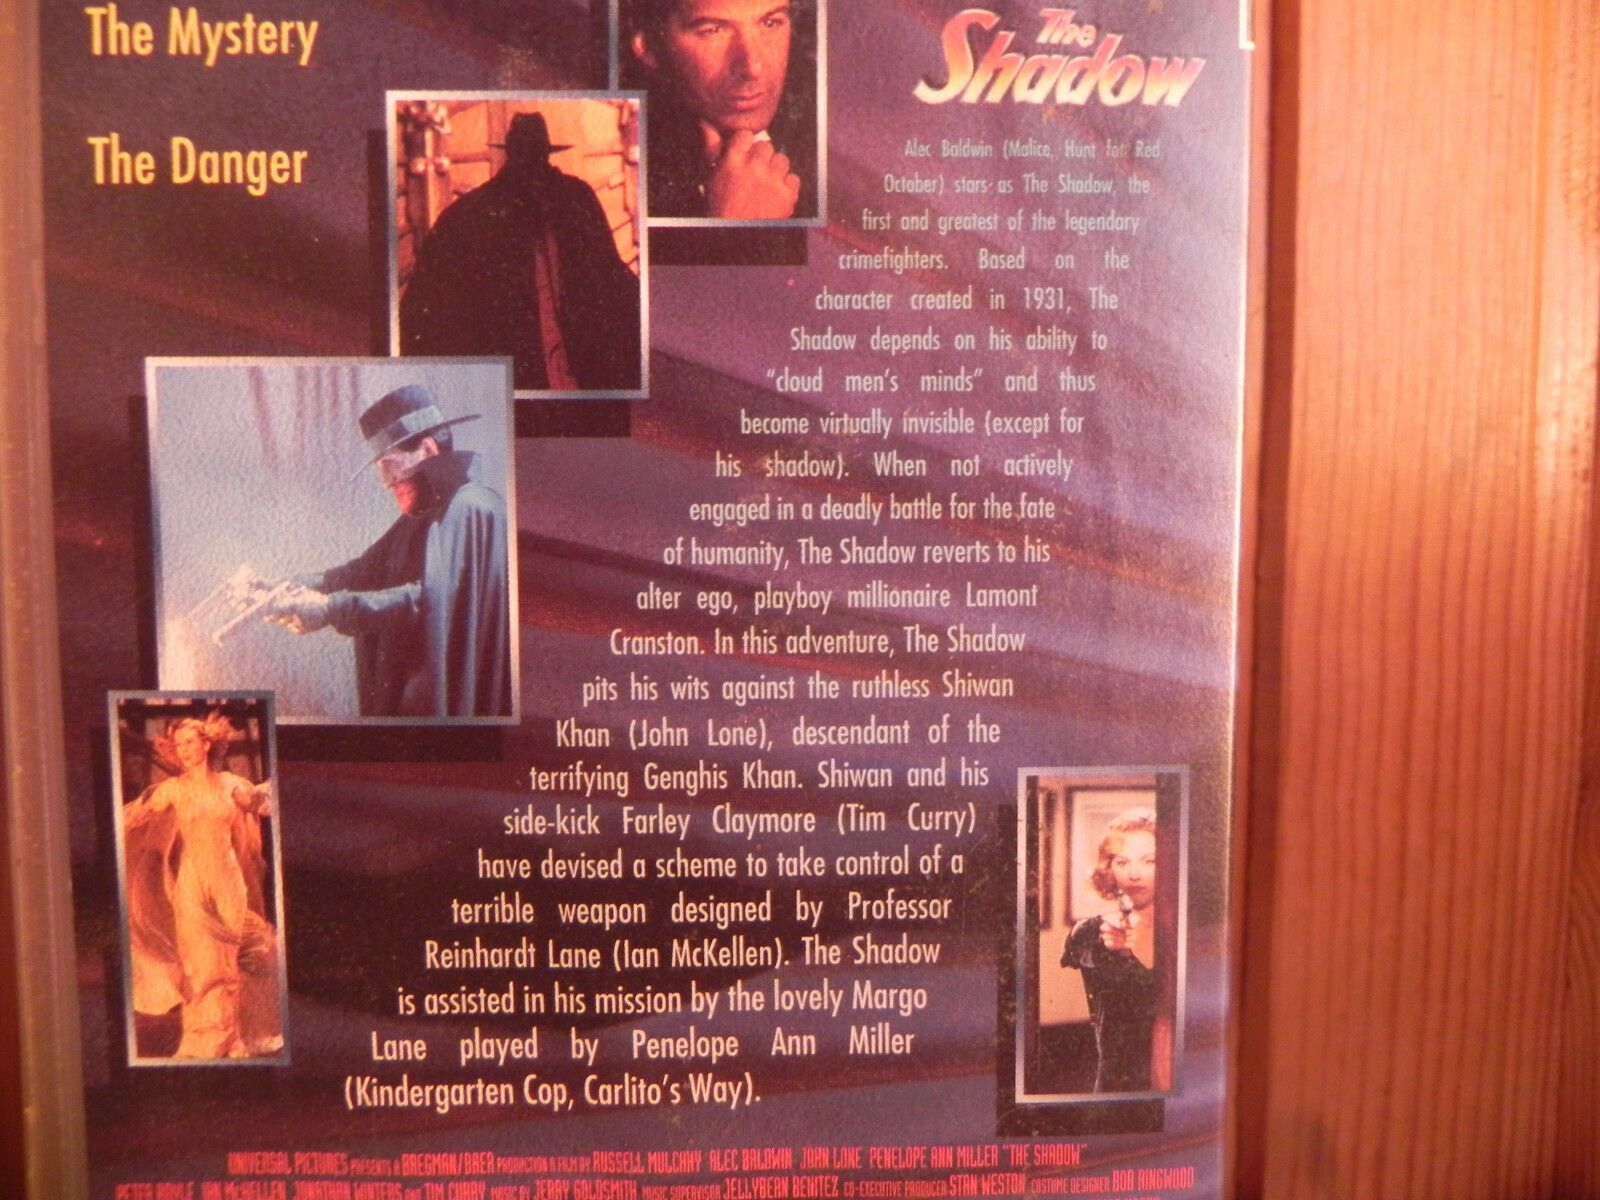 The Shadow - Alec Baldwin - The Glamour, The Mystery, The Danger - Universal VHS